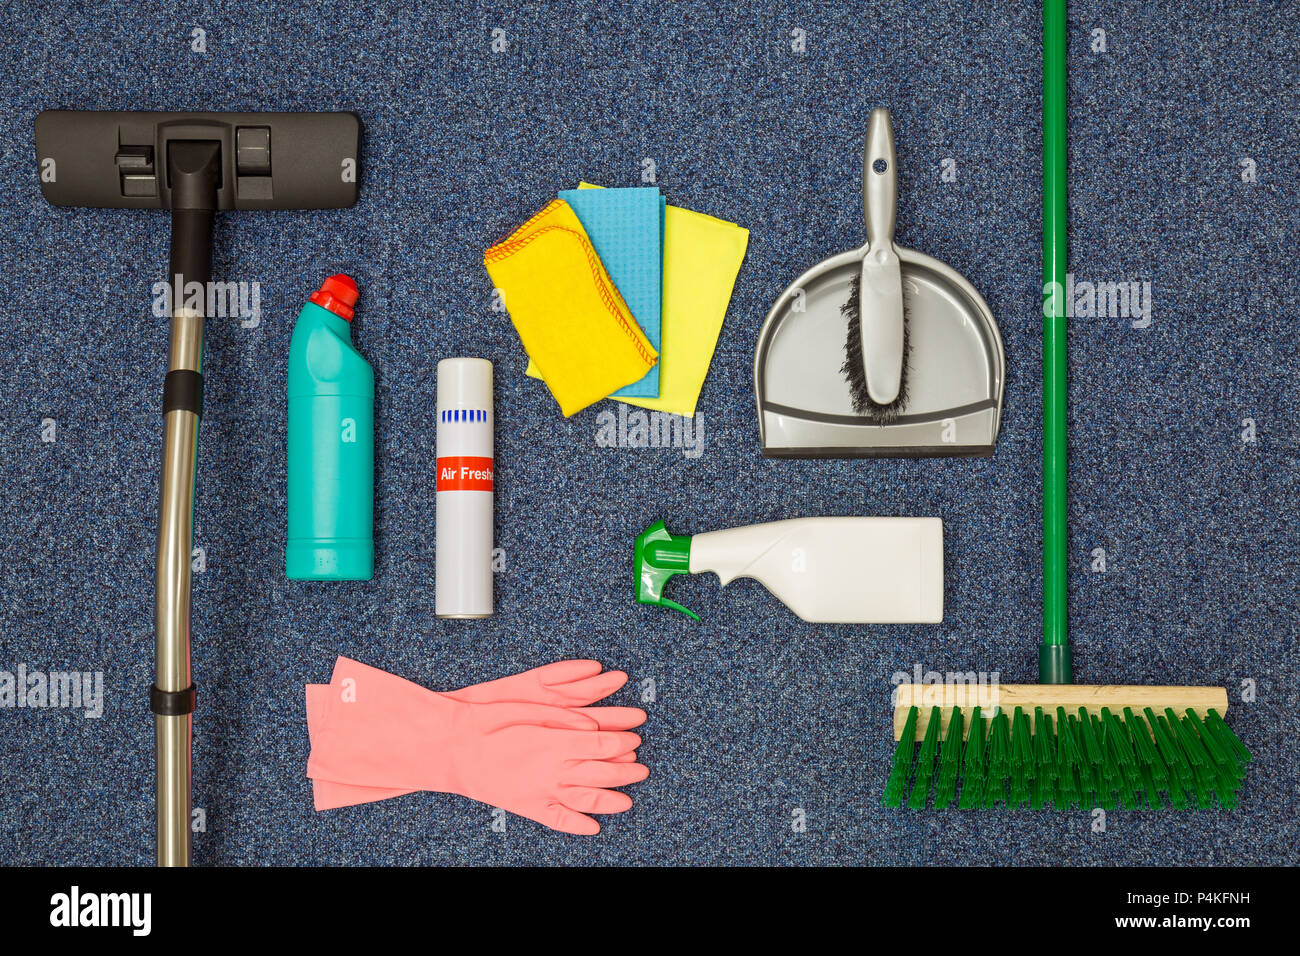 A flat lay arrangement of cleaning equipment on a blue office carpat background. - Stock Image